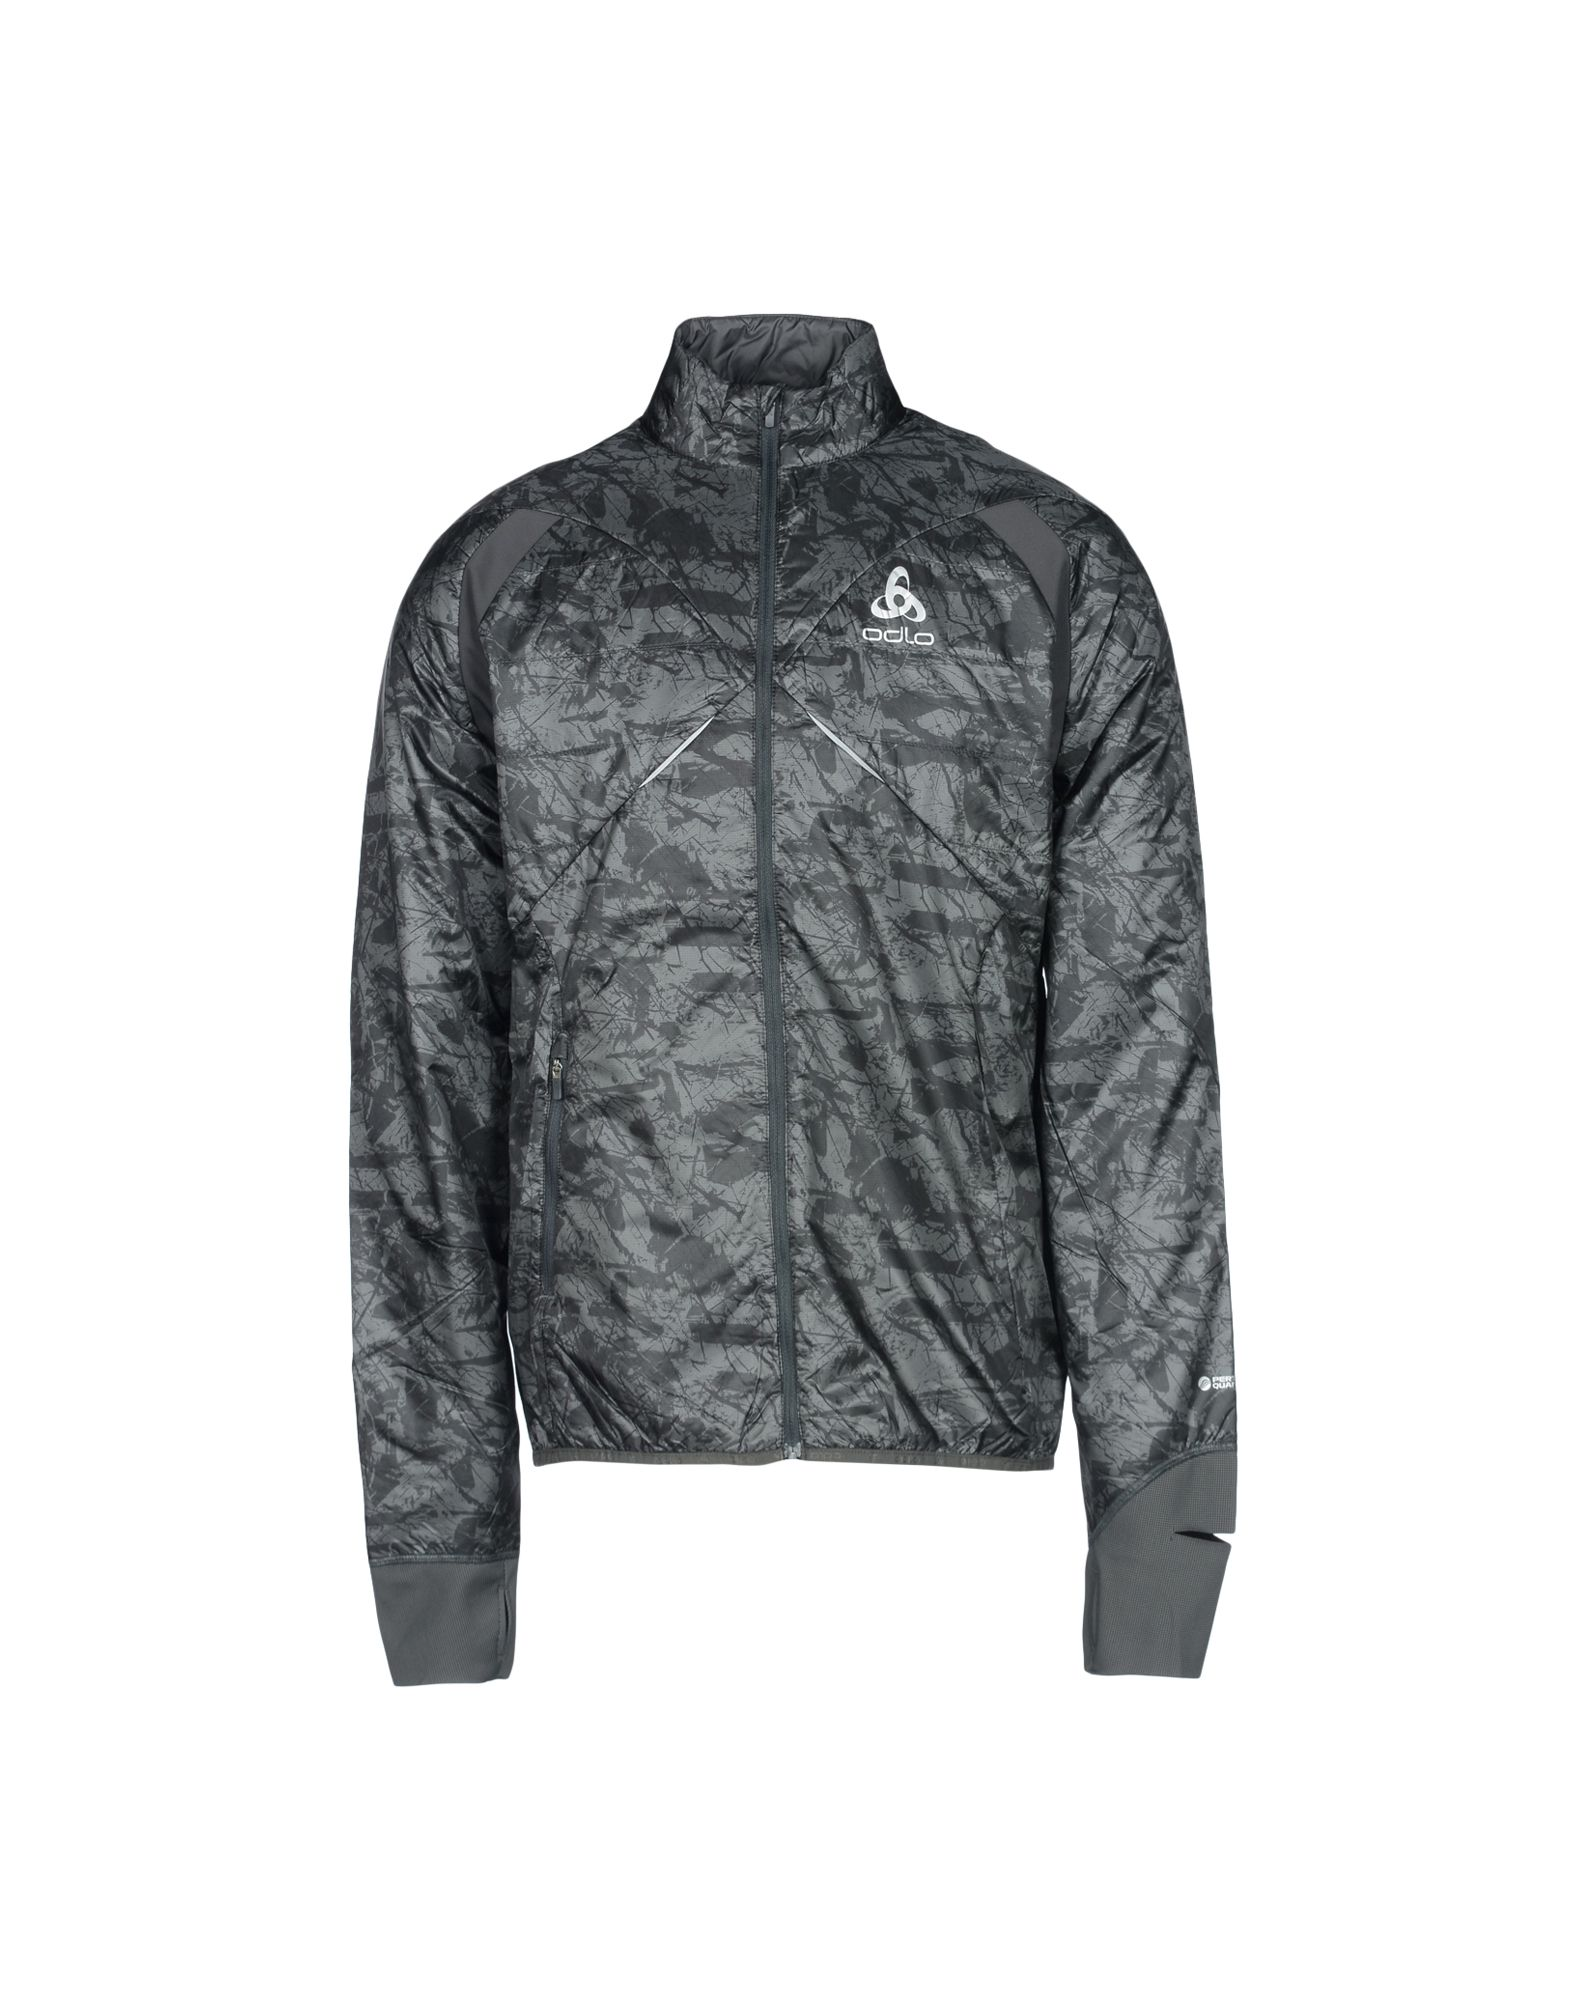 ODLO Jacket in Lead